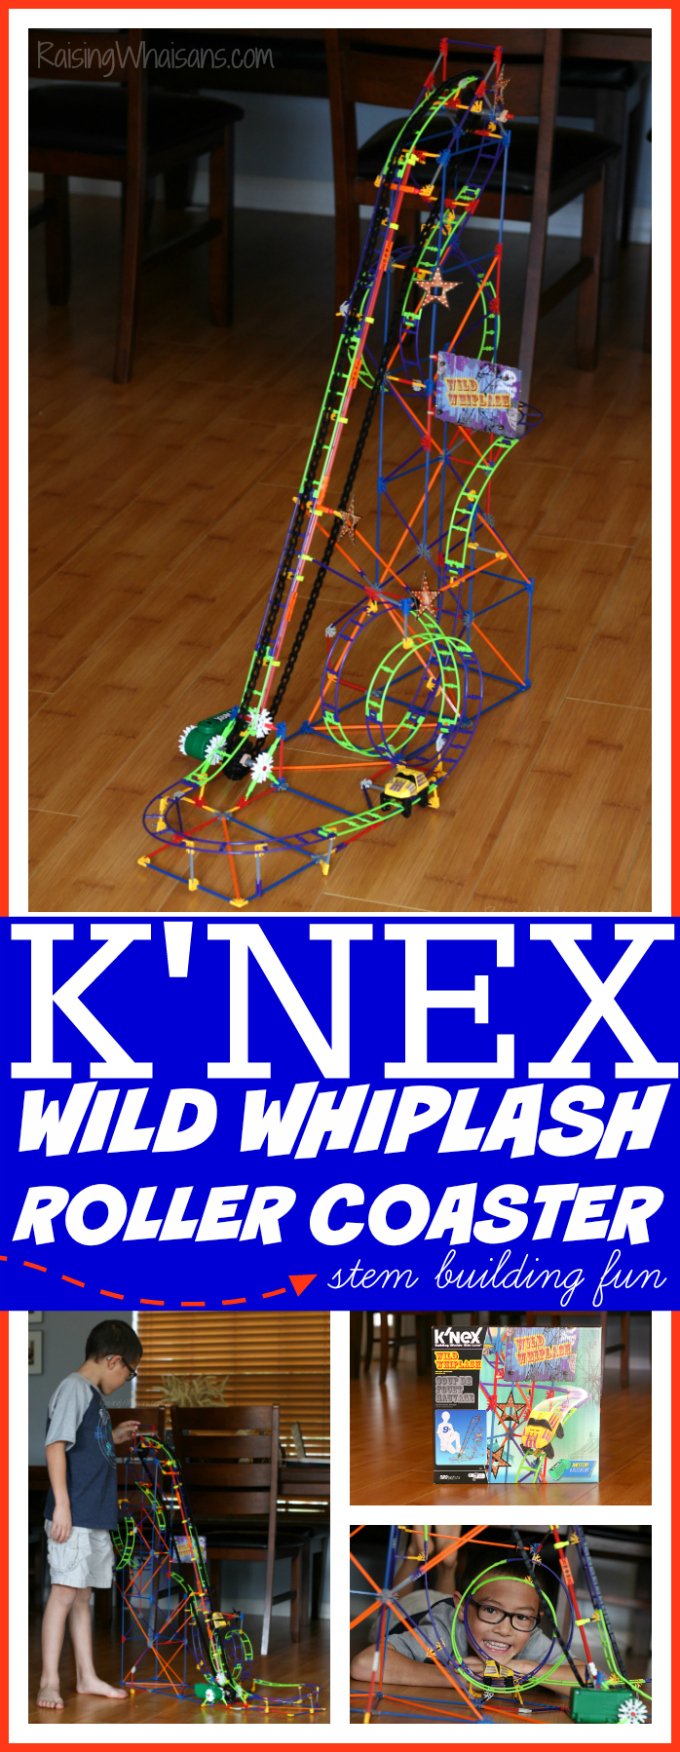 STEM building fun with knex wild whiplash roller coaster